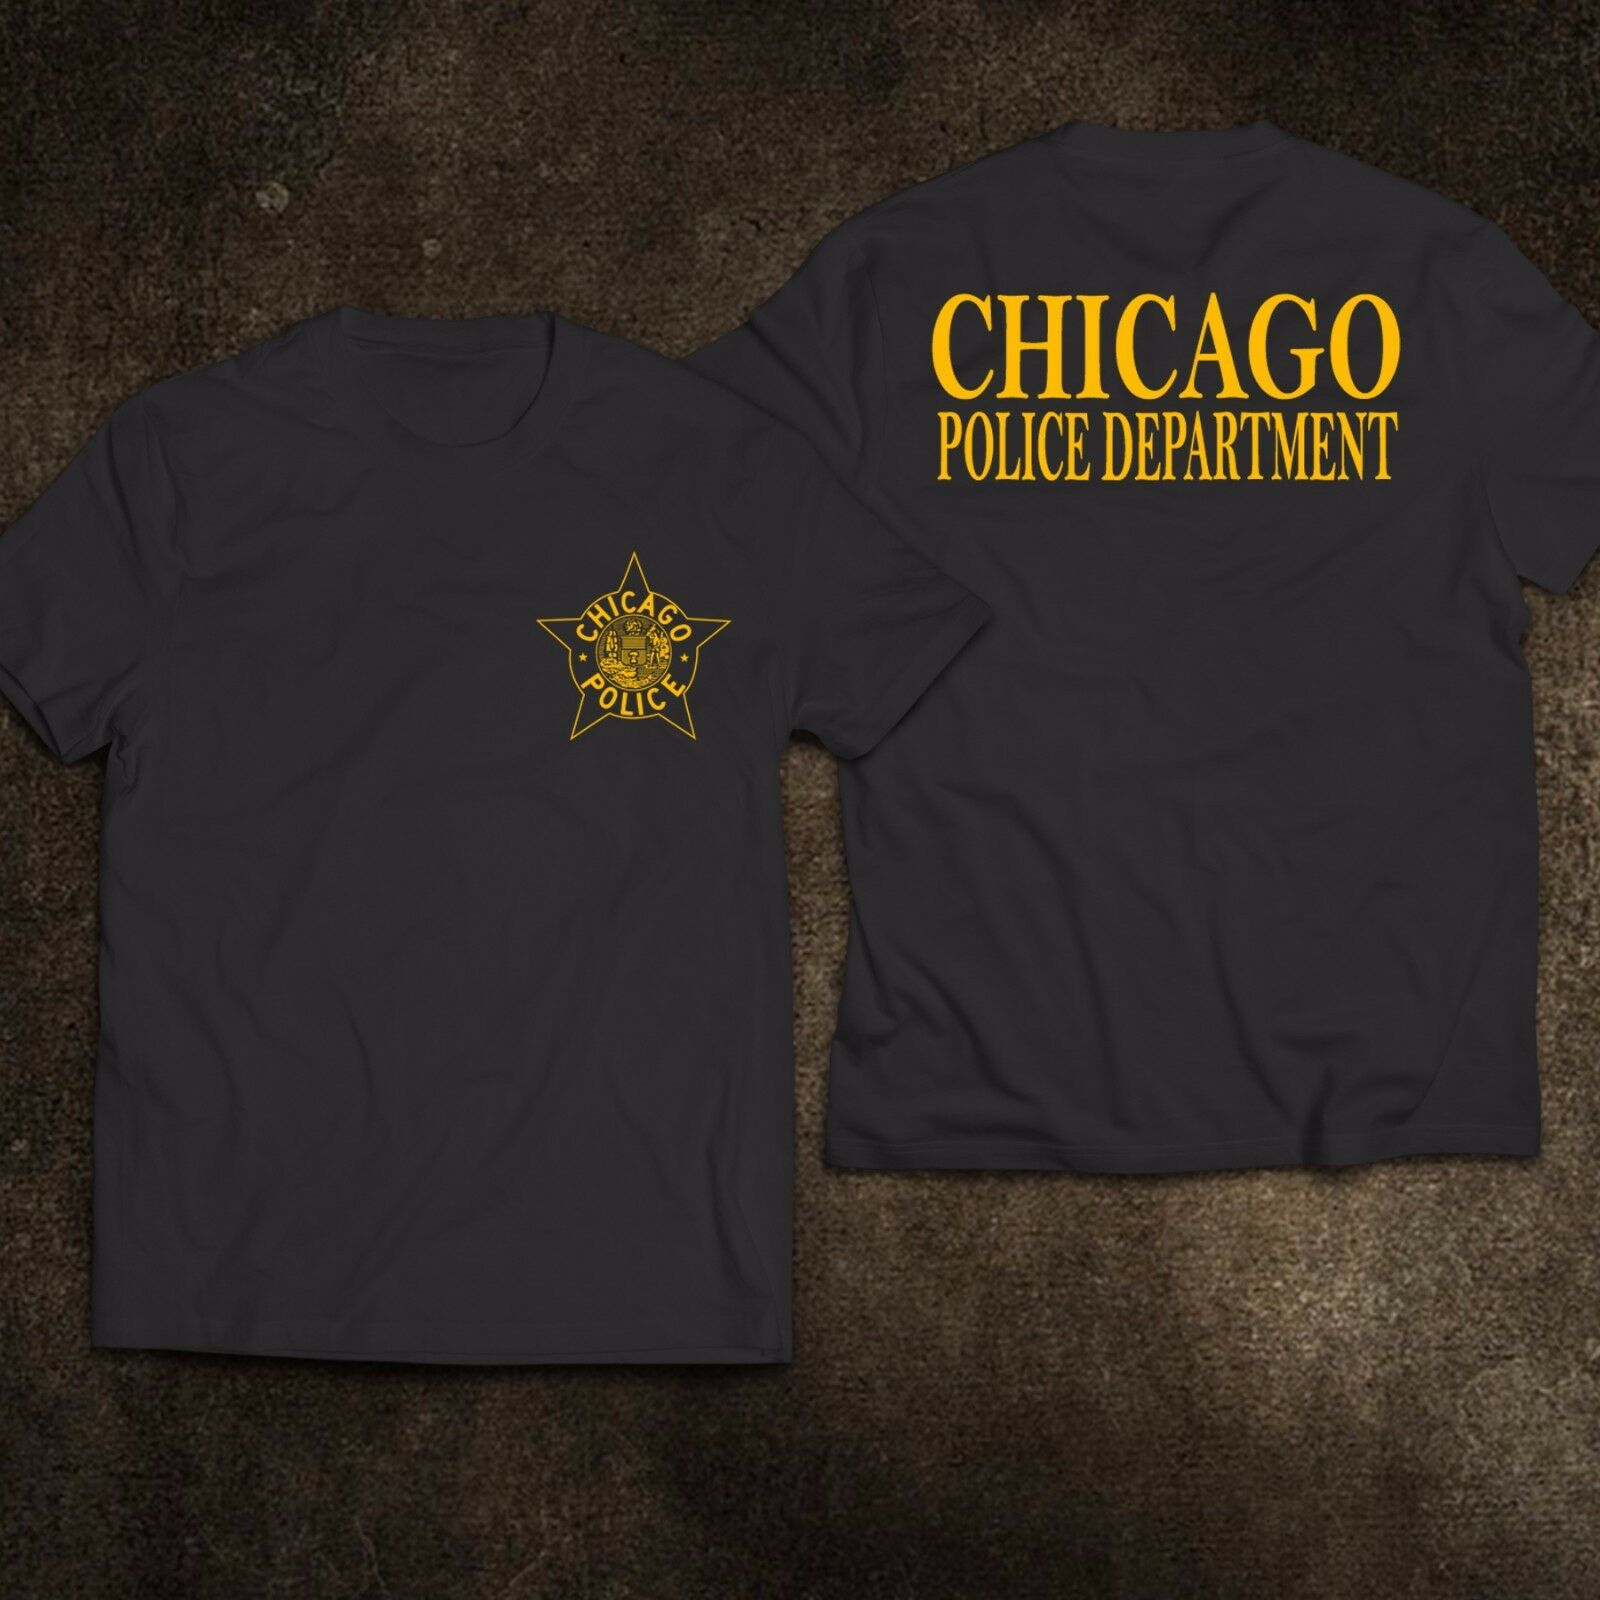 2019 Funny New Chicago Police Department United States Tee T-Shirt S-3Xl Double Side Unisex Tee